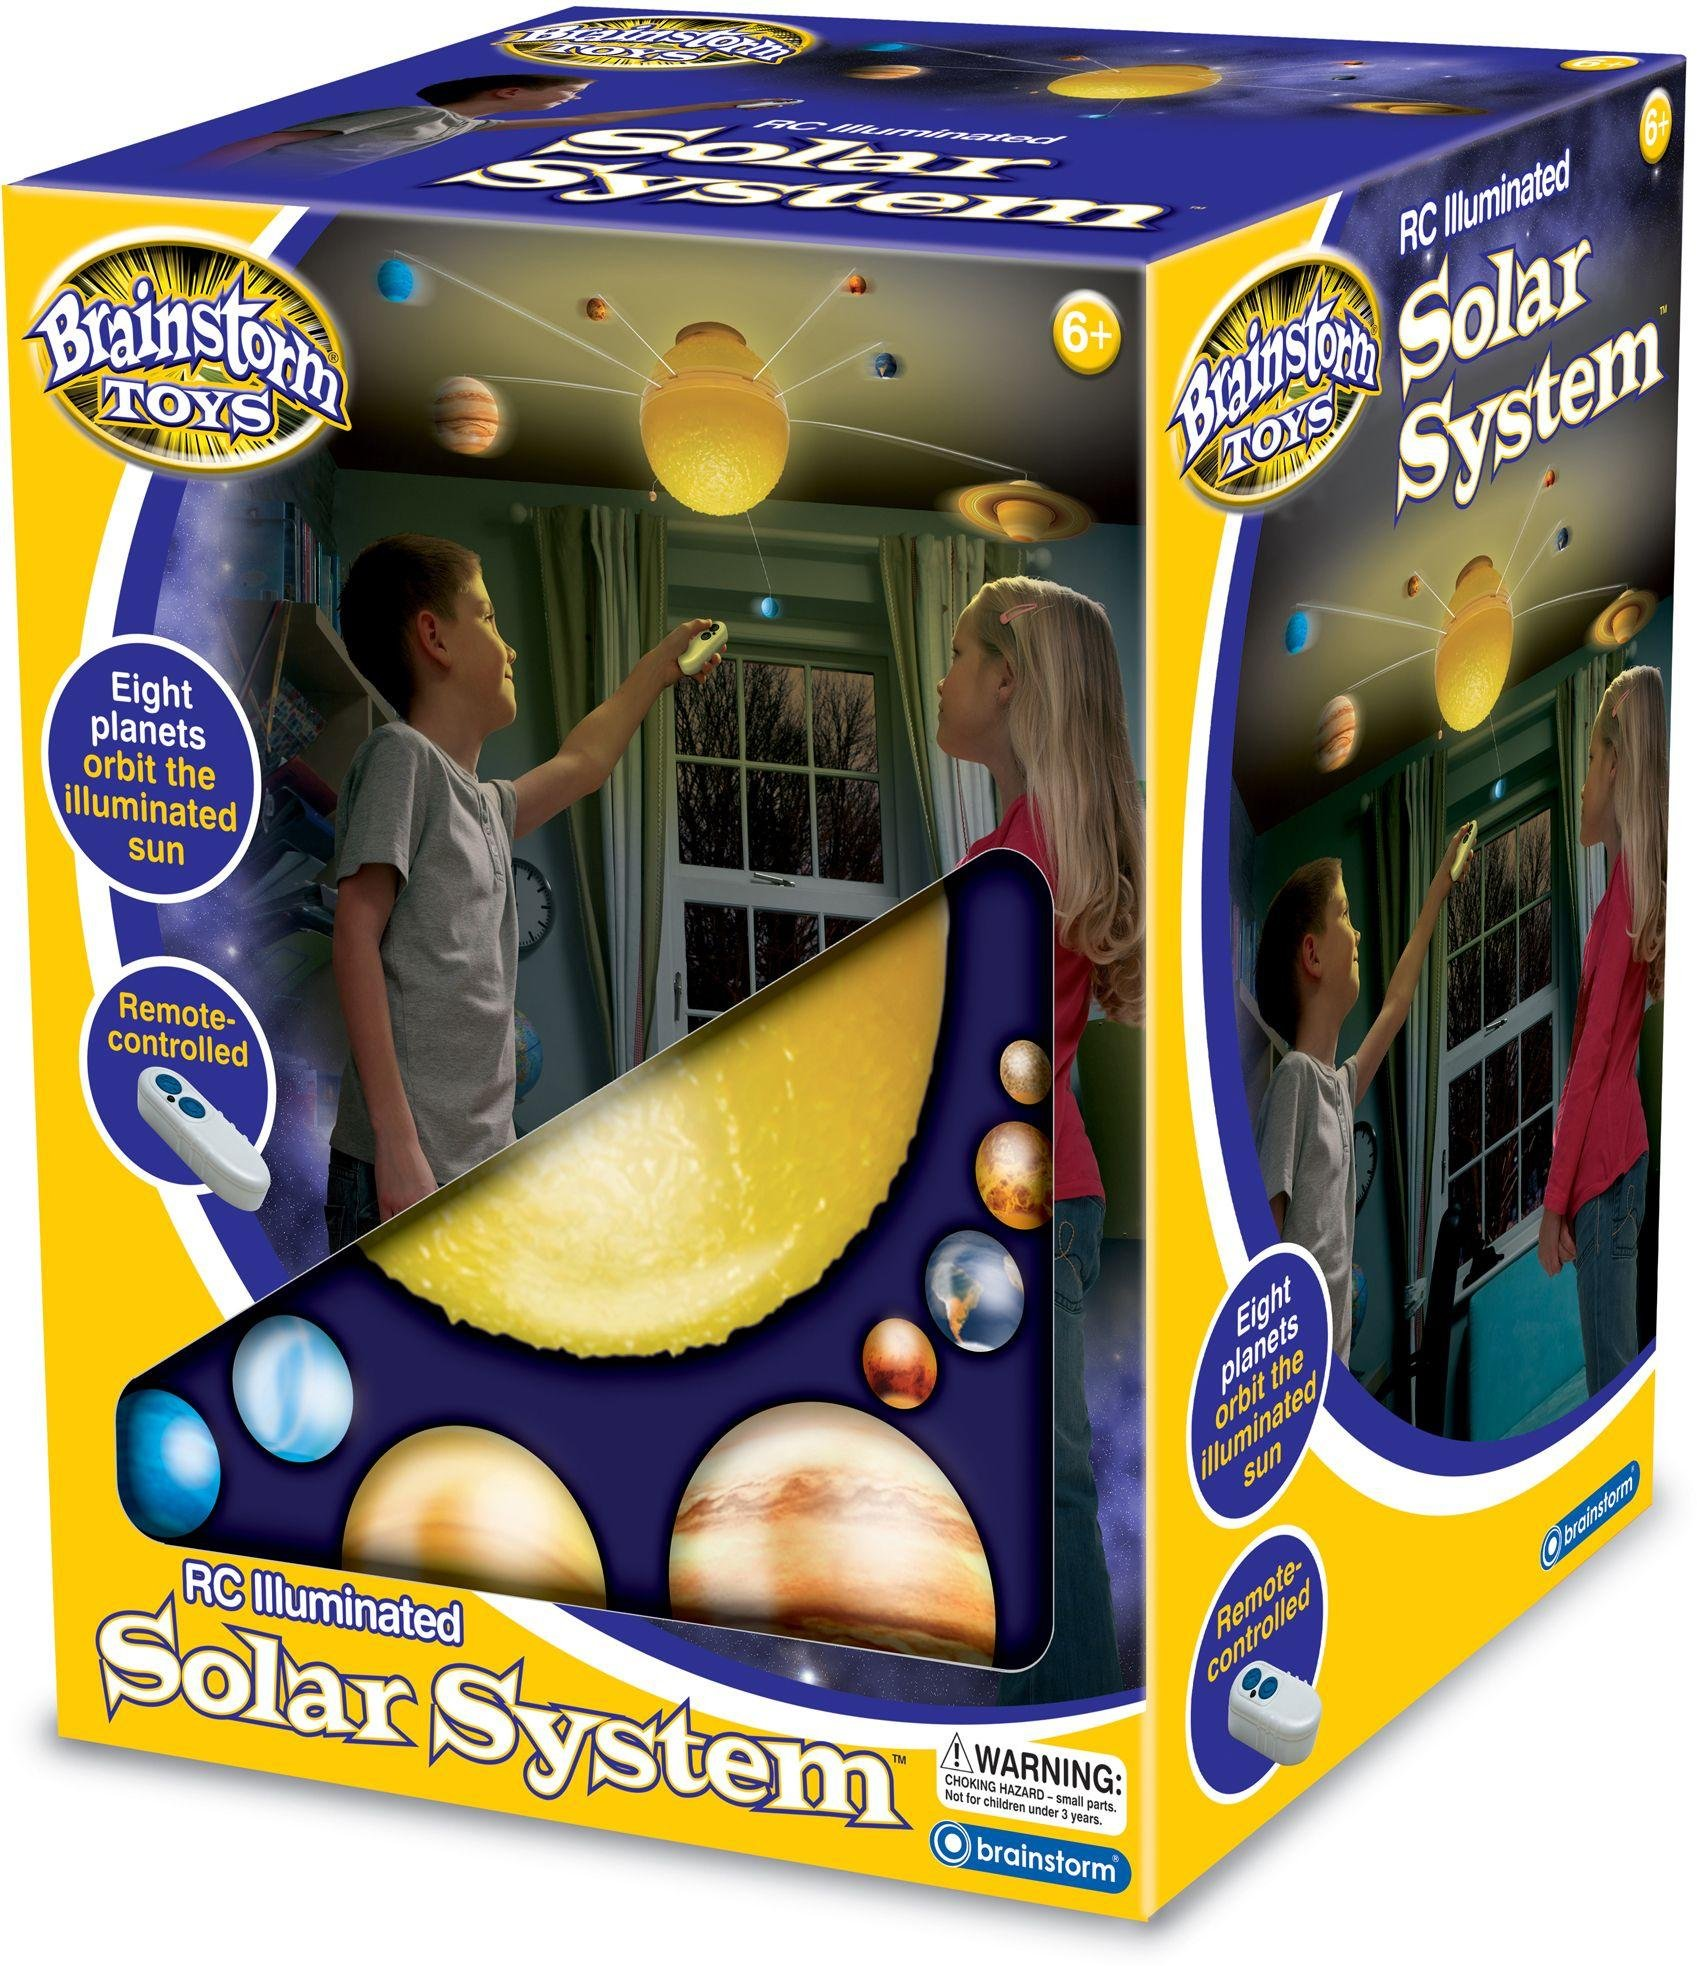 Image of Brainstorm Toys RC Illuminated Solar System.